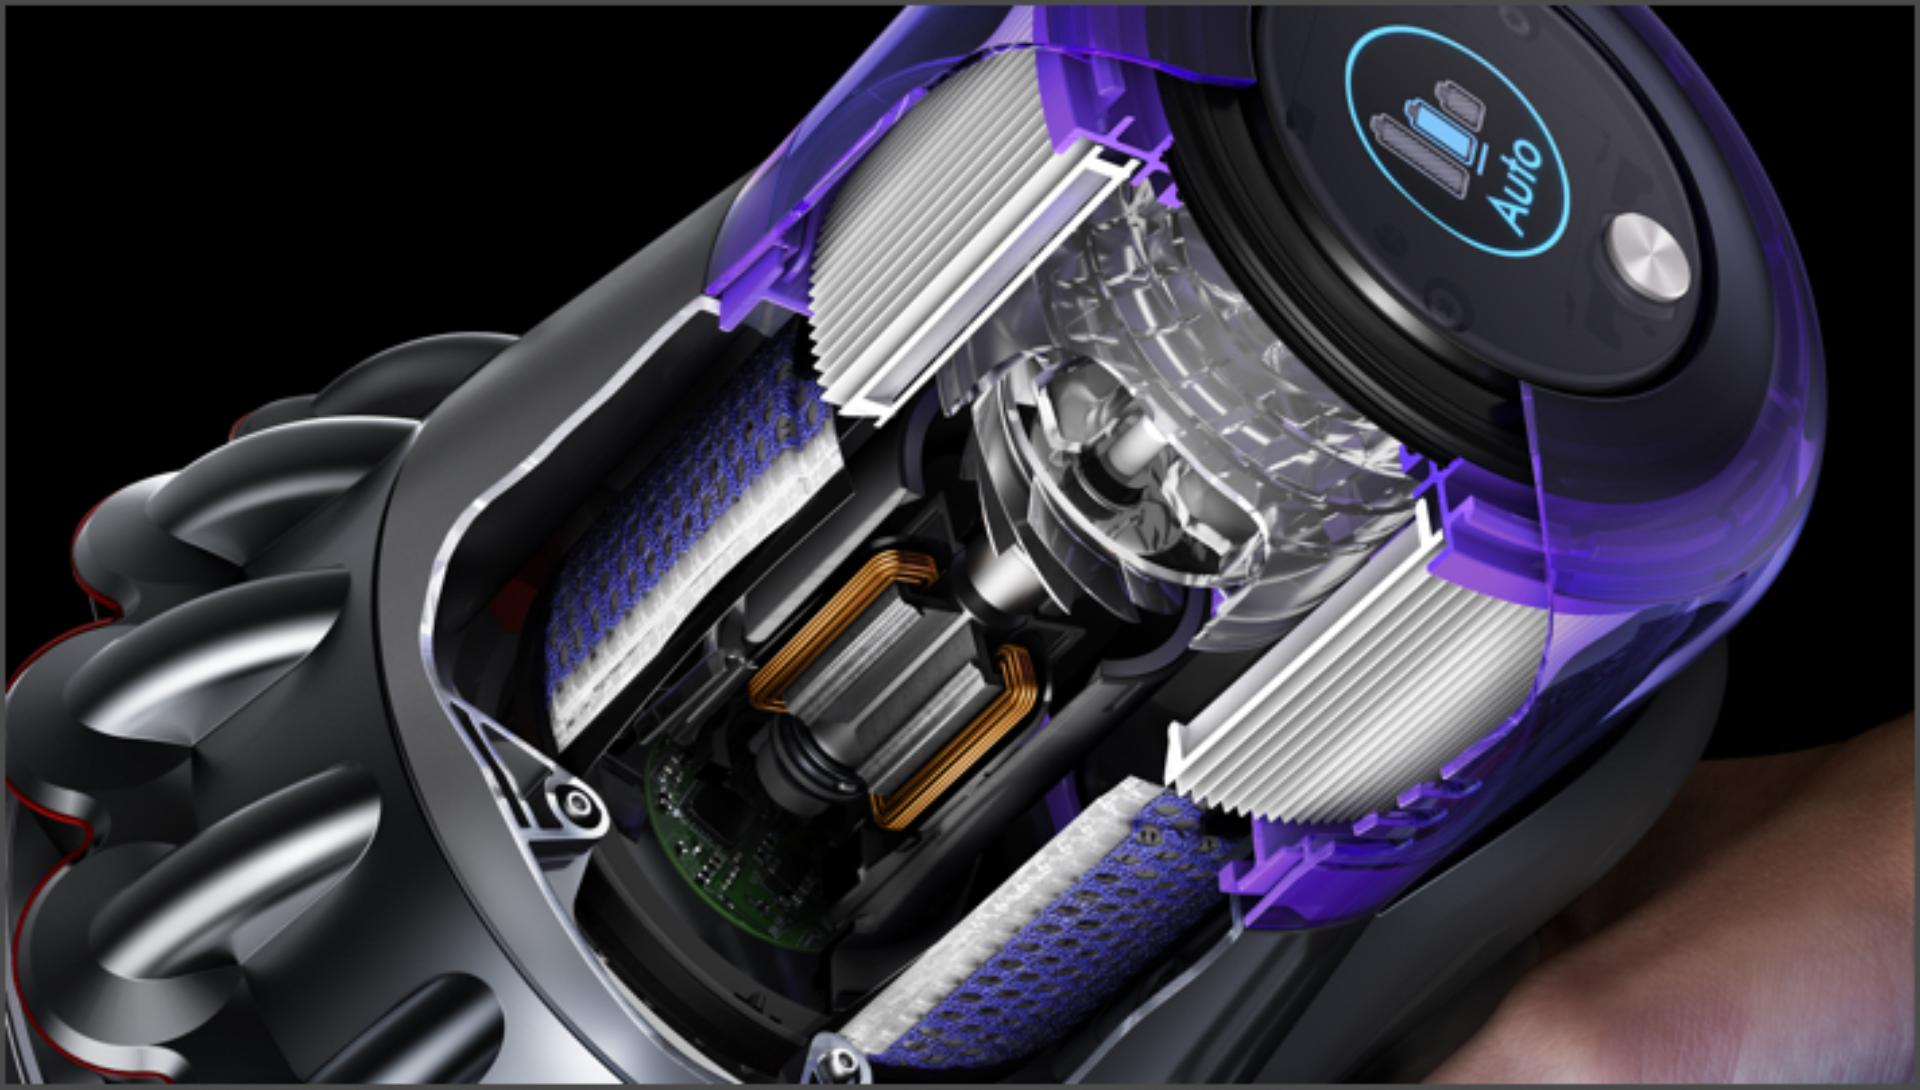 Cutaway of the Dyson V11 Outsize vacuum's motor